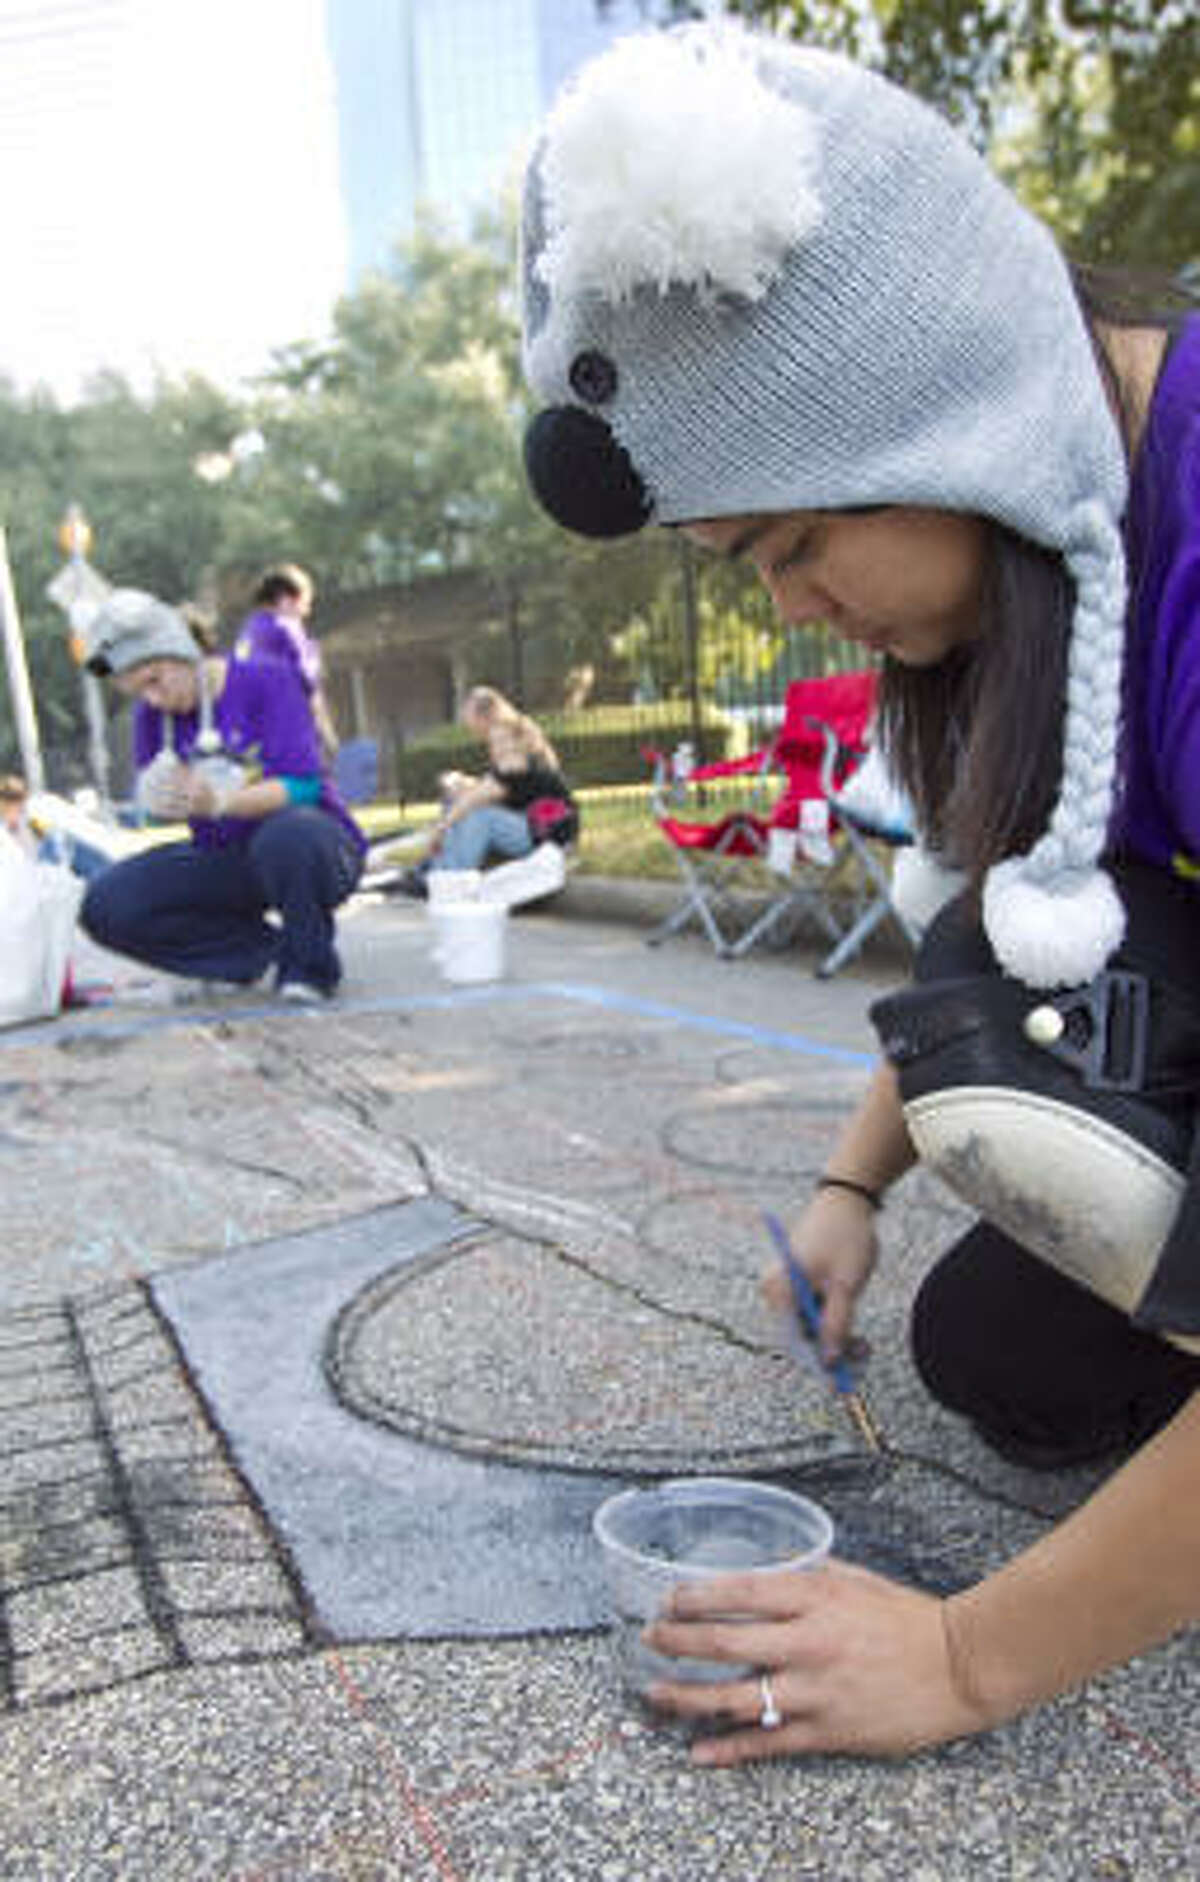 Grace Hunter, an artist and art teacher, works on her drawing Les Poison during the Via Colori street painting festival.